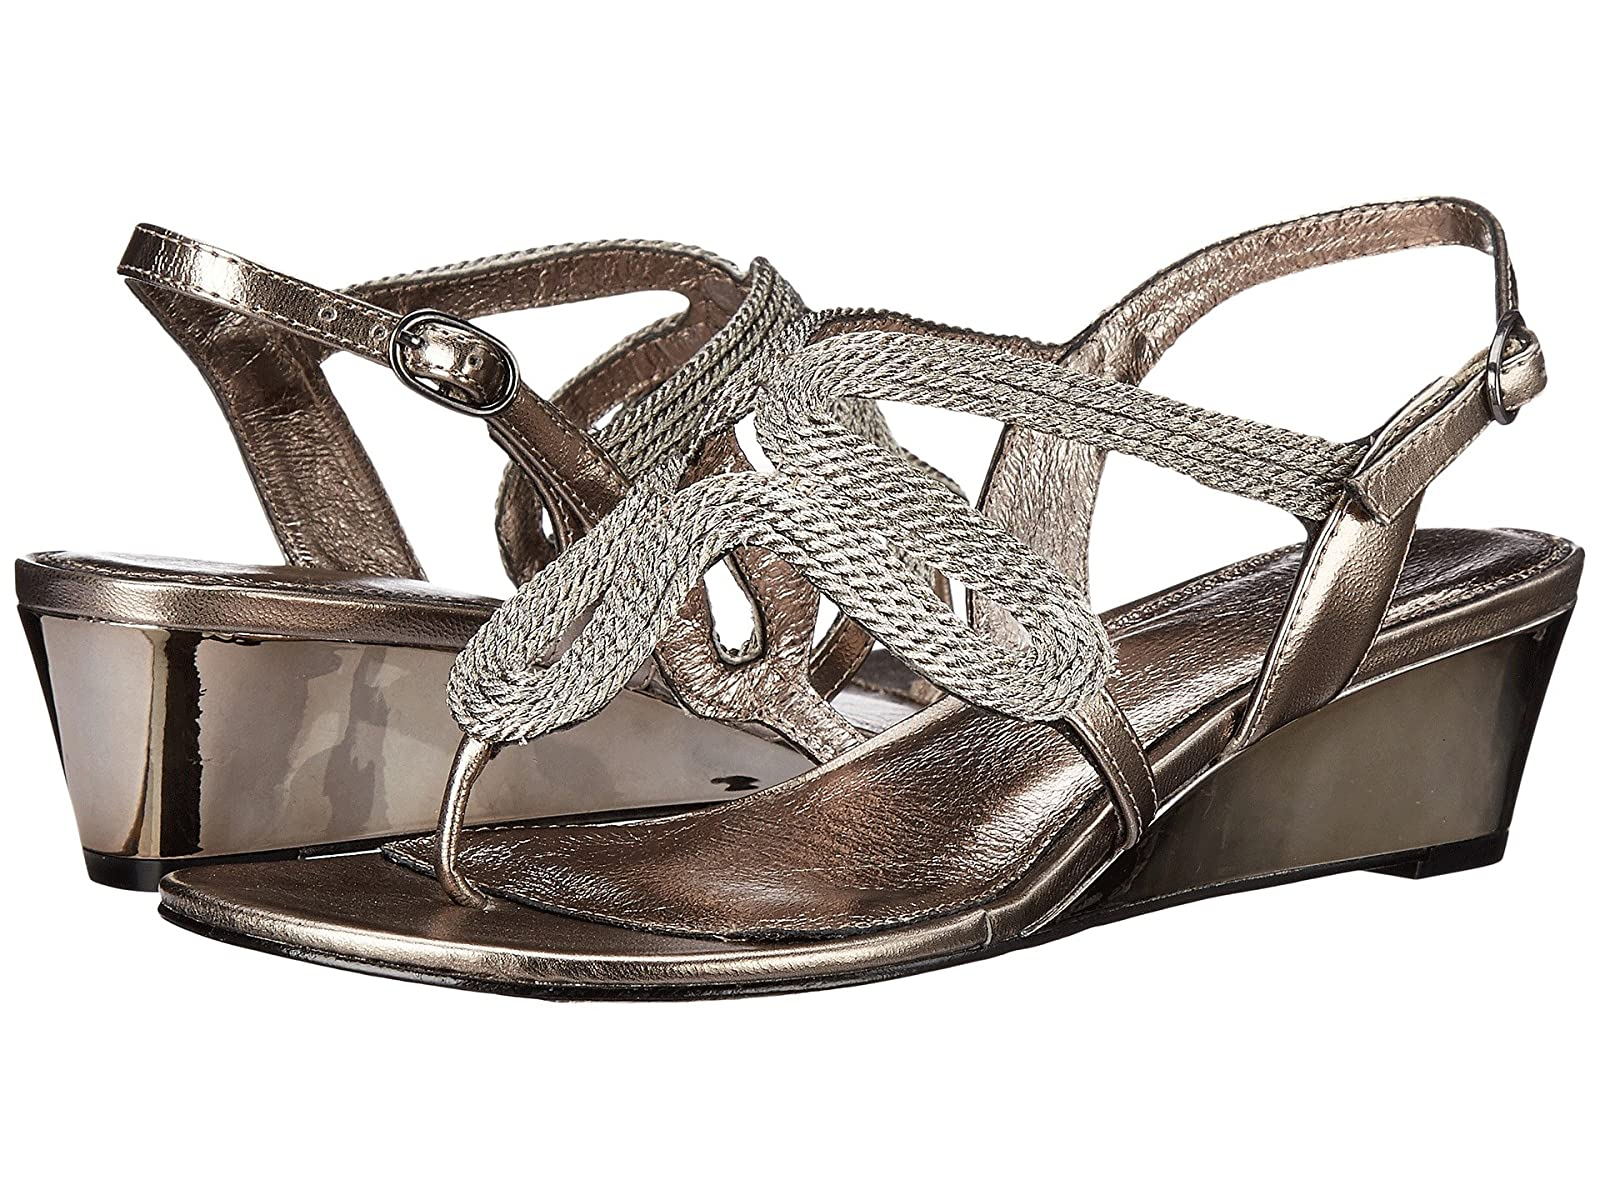 Adrianna Papell CarliCheap and distinctive eye-catching shoes